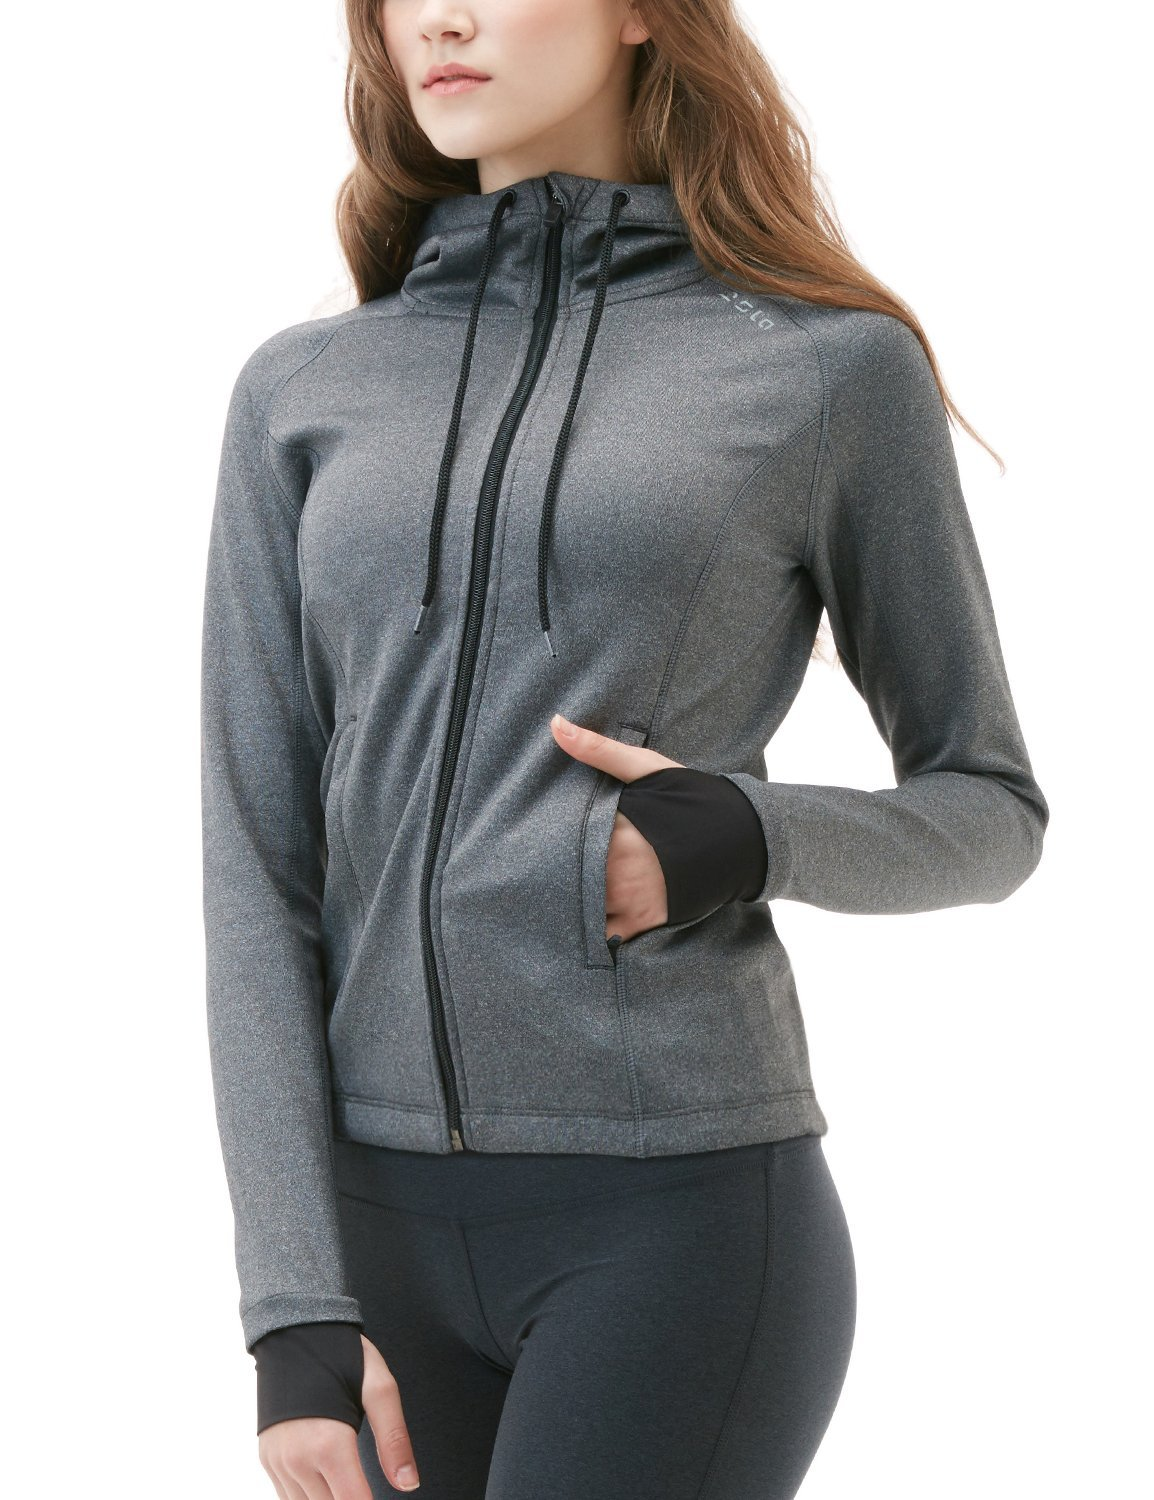 Tesla Women's Lightweight Active Performance Full Zip Hoodie Jacket FKJ04/FKJ02